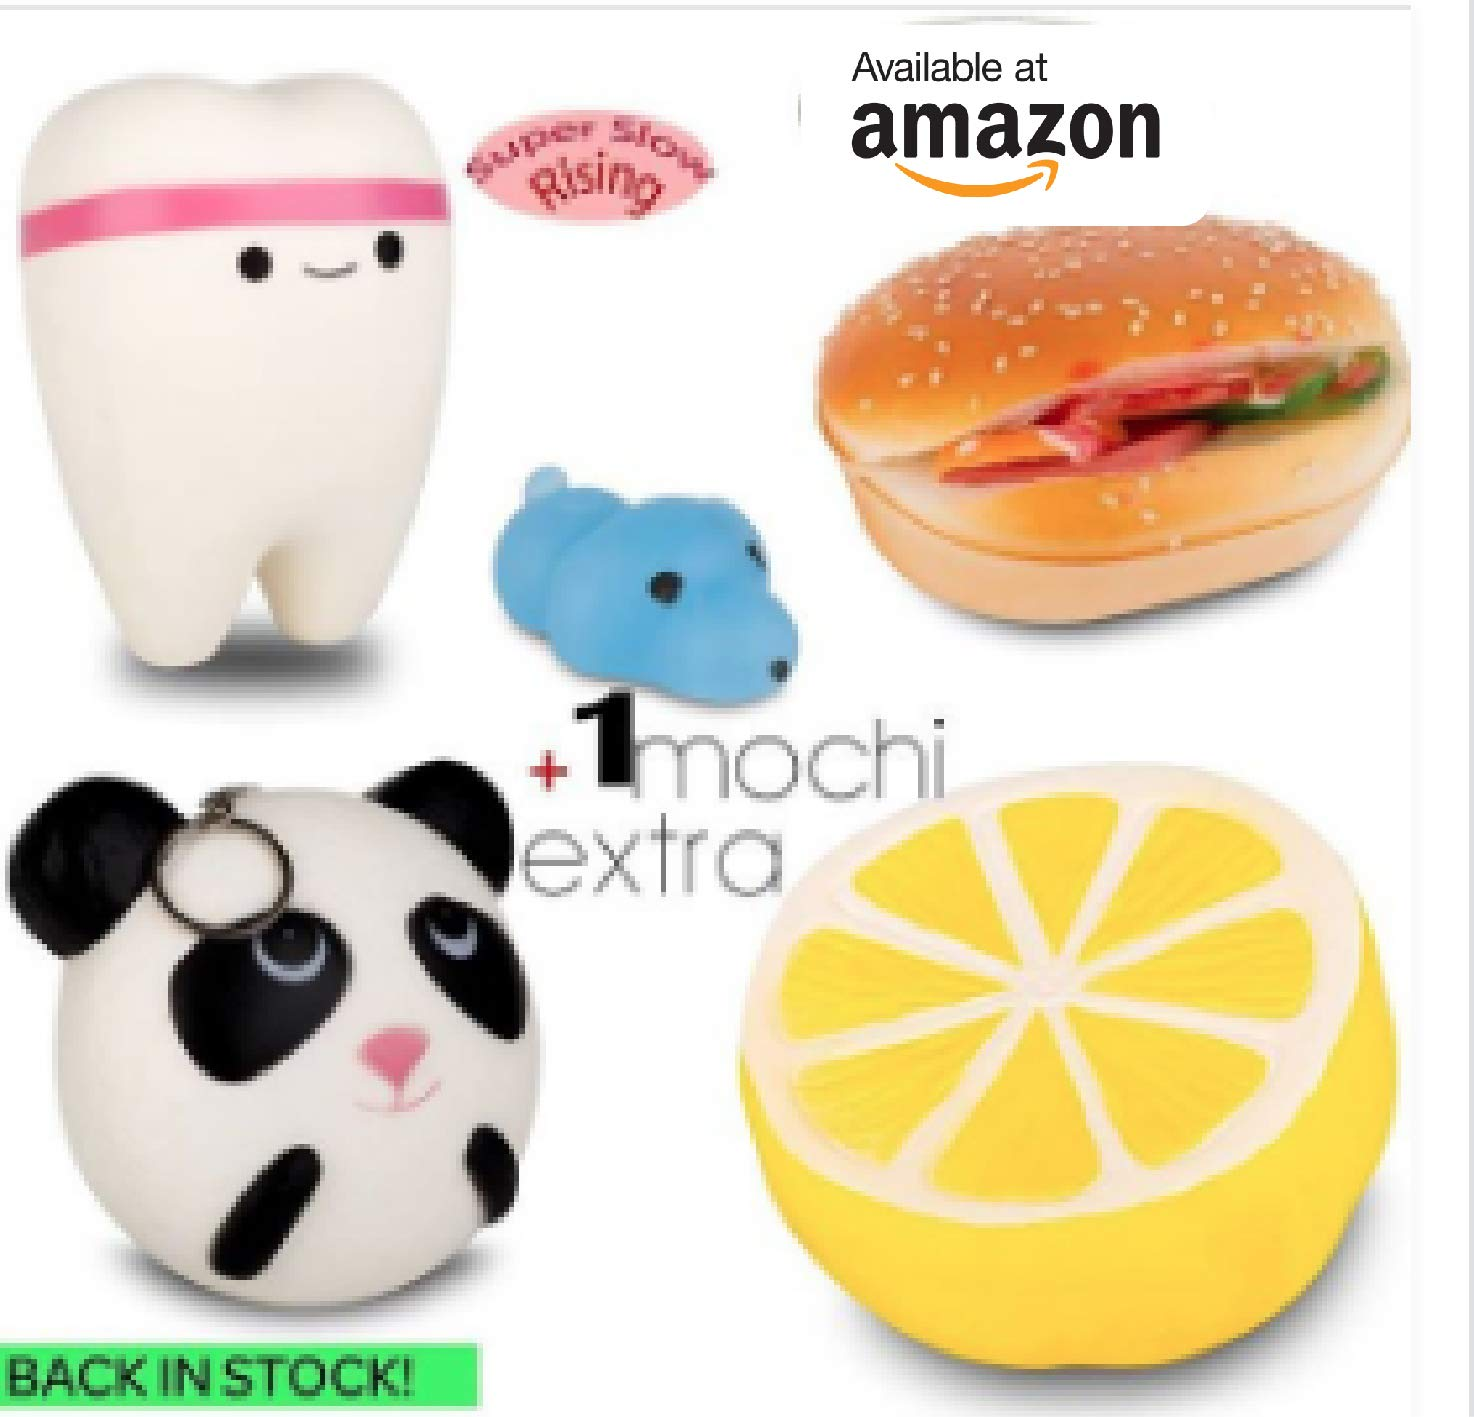 Kids and Adults Soft and Slow Rising for Stress Relief for Toddlers WUAH 5 Cutie Creative Squishy Toys Set: 4 Jumbo Squishies and 1 Mochi Squishy Cute Scented Squeeze Stuffed Toys